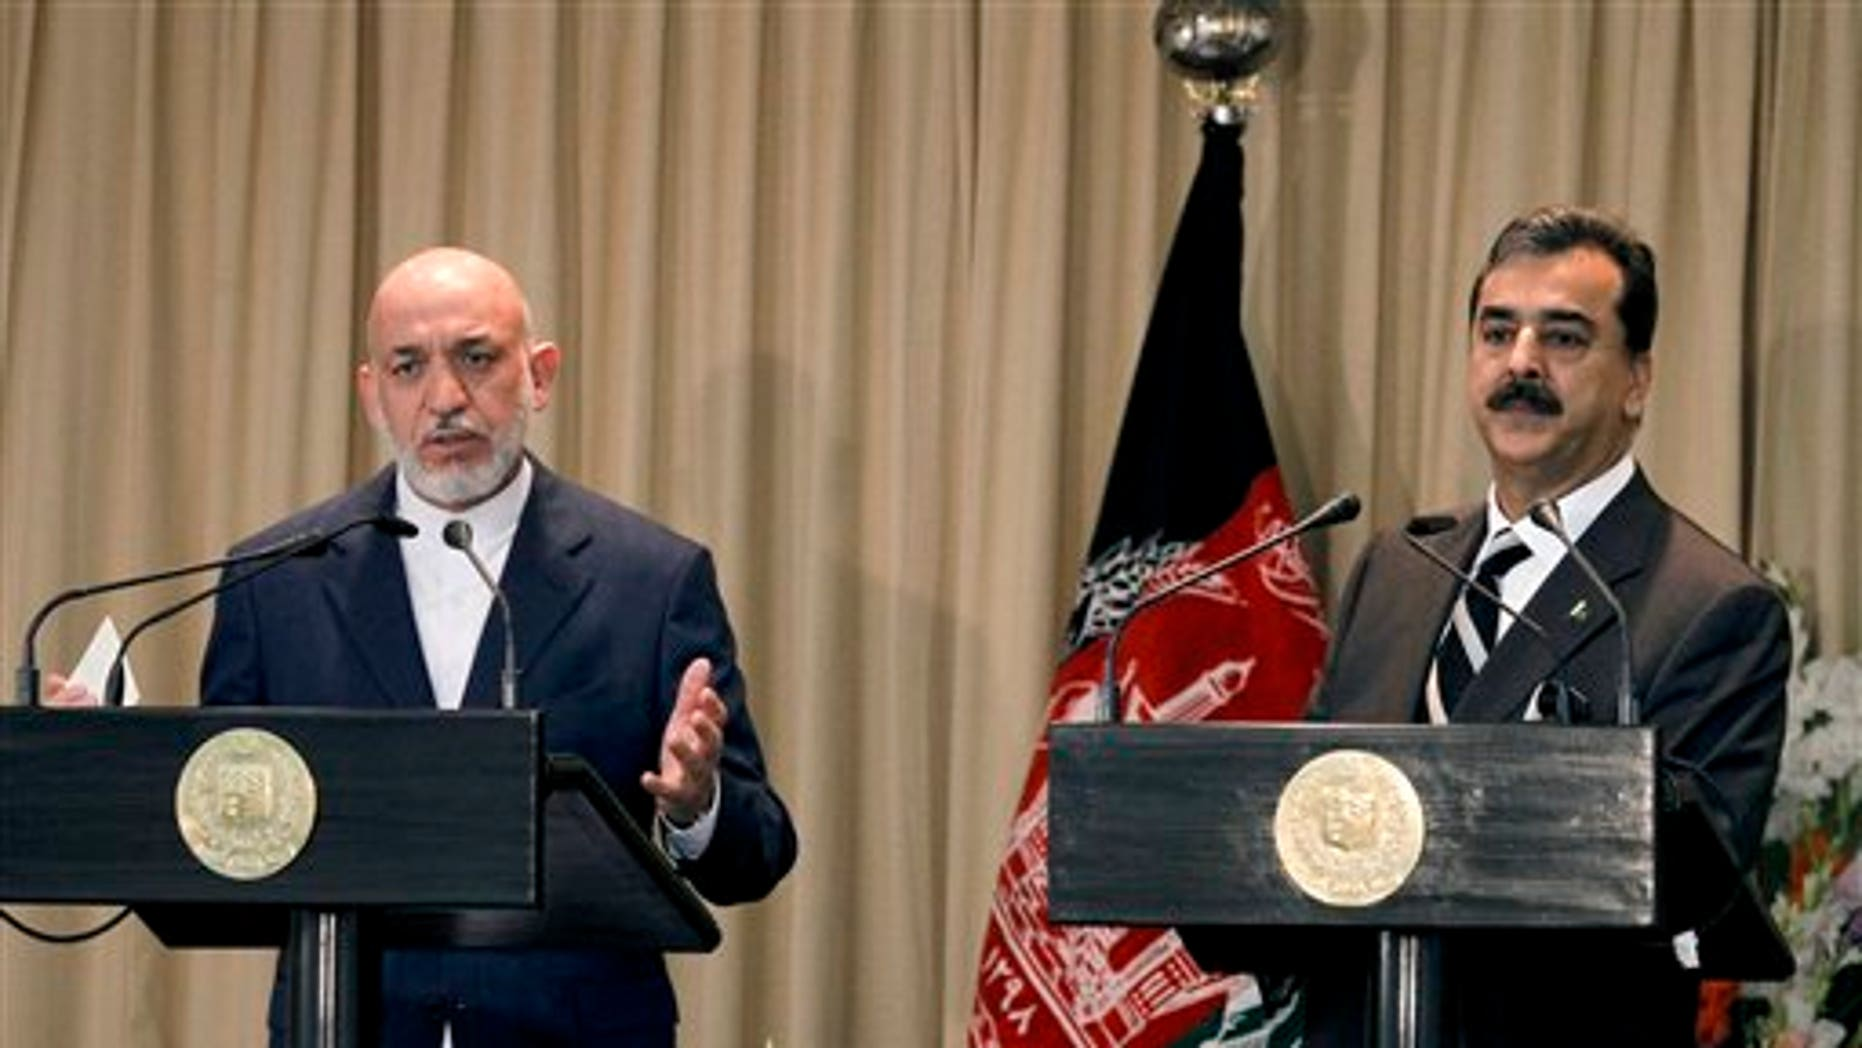 Afghan President Hamid Karzai, left, speaks, with Pakistani Prime Minister Yousuf Raza Gilani on the right, during a joint press conference in Islamabad, Pakistan.